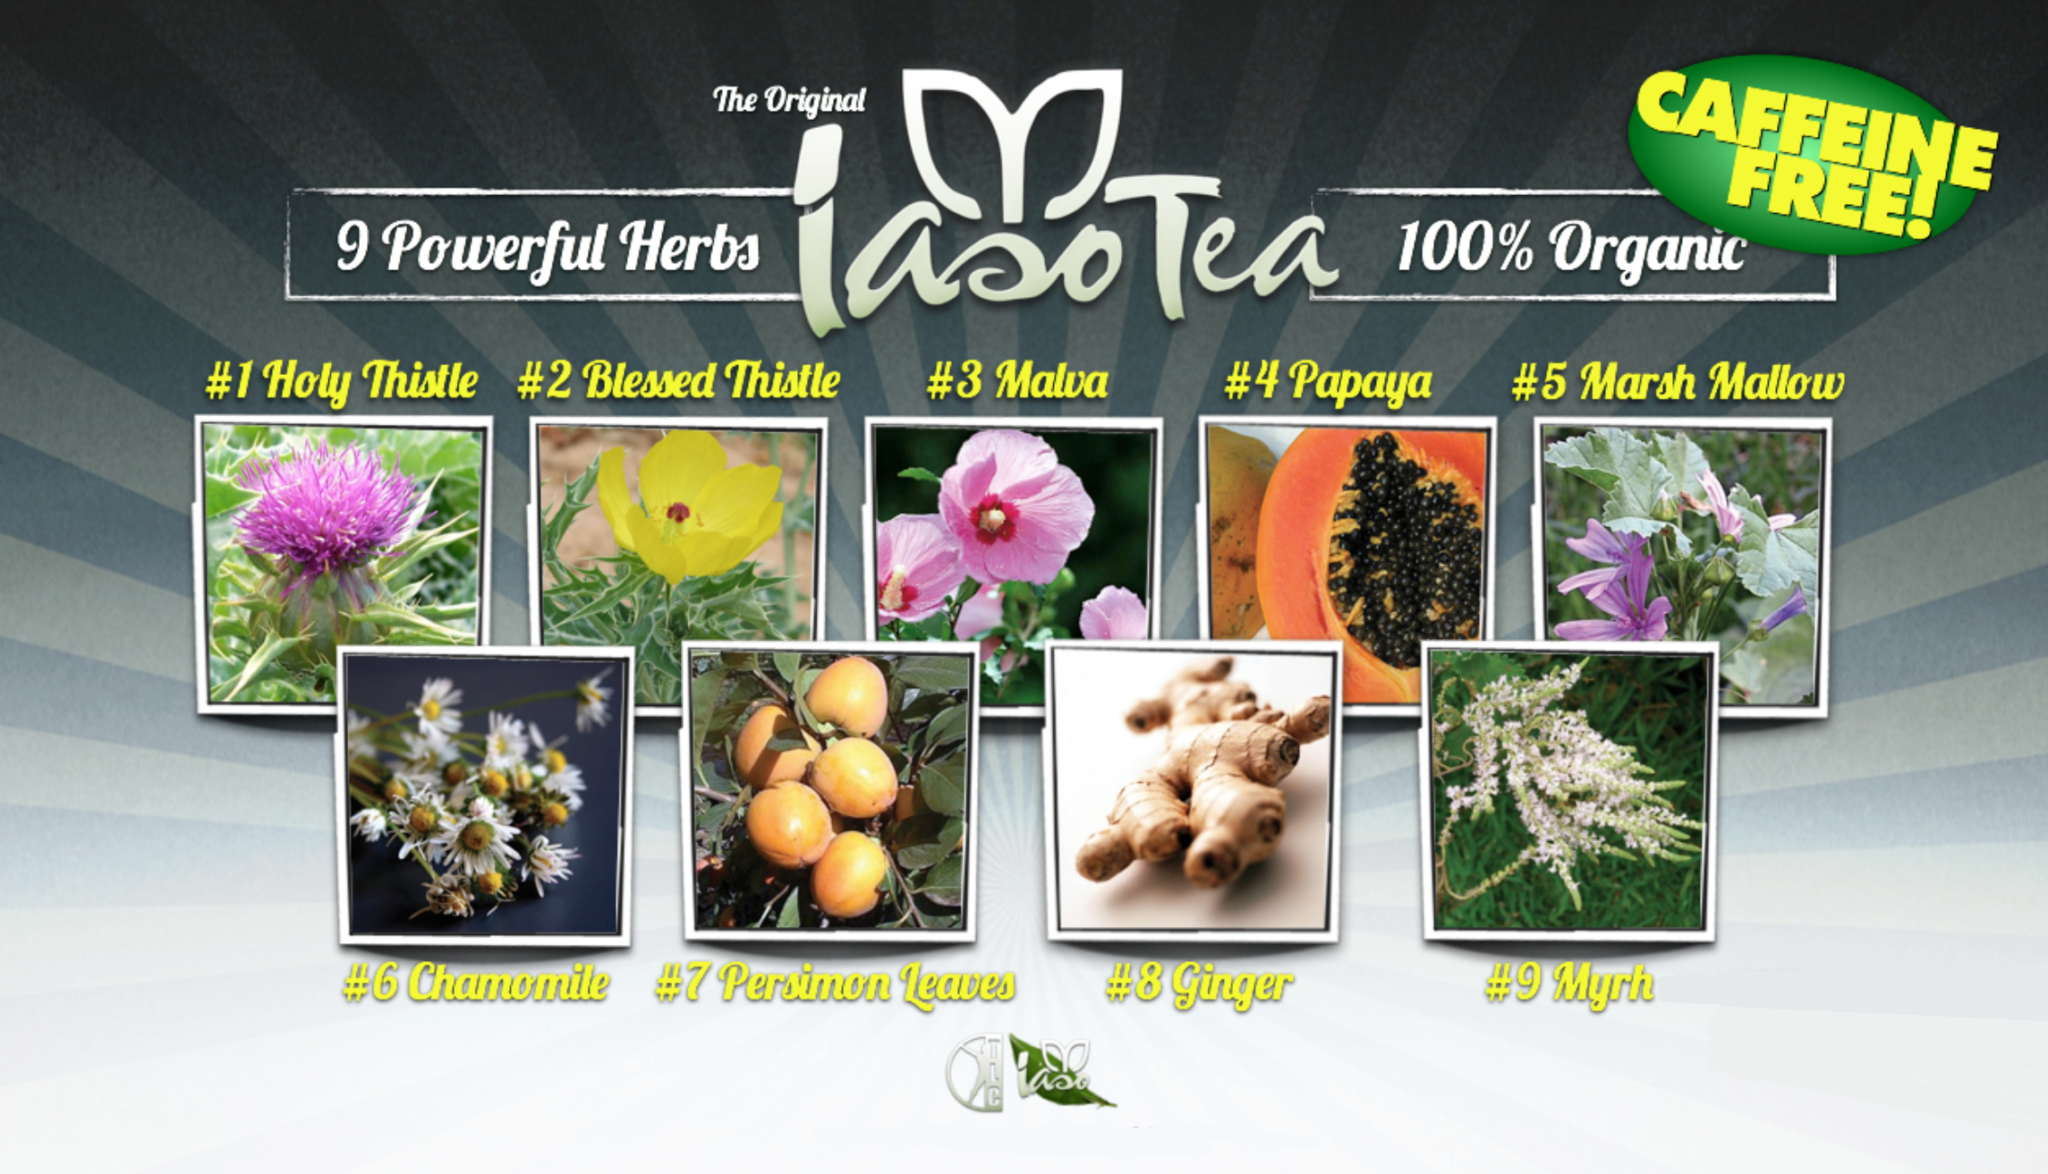 Herbs contained in Iaso Tea